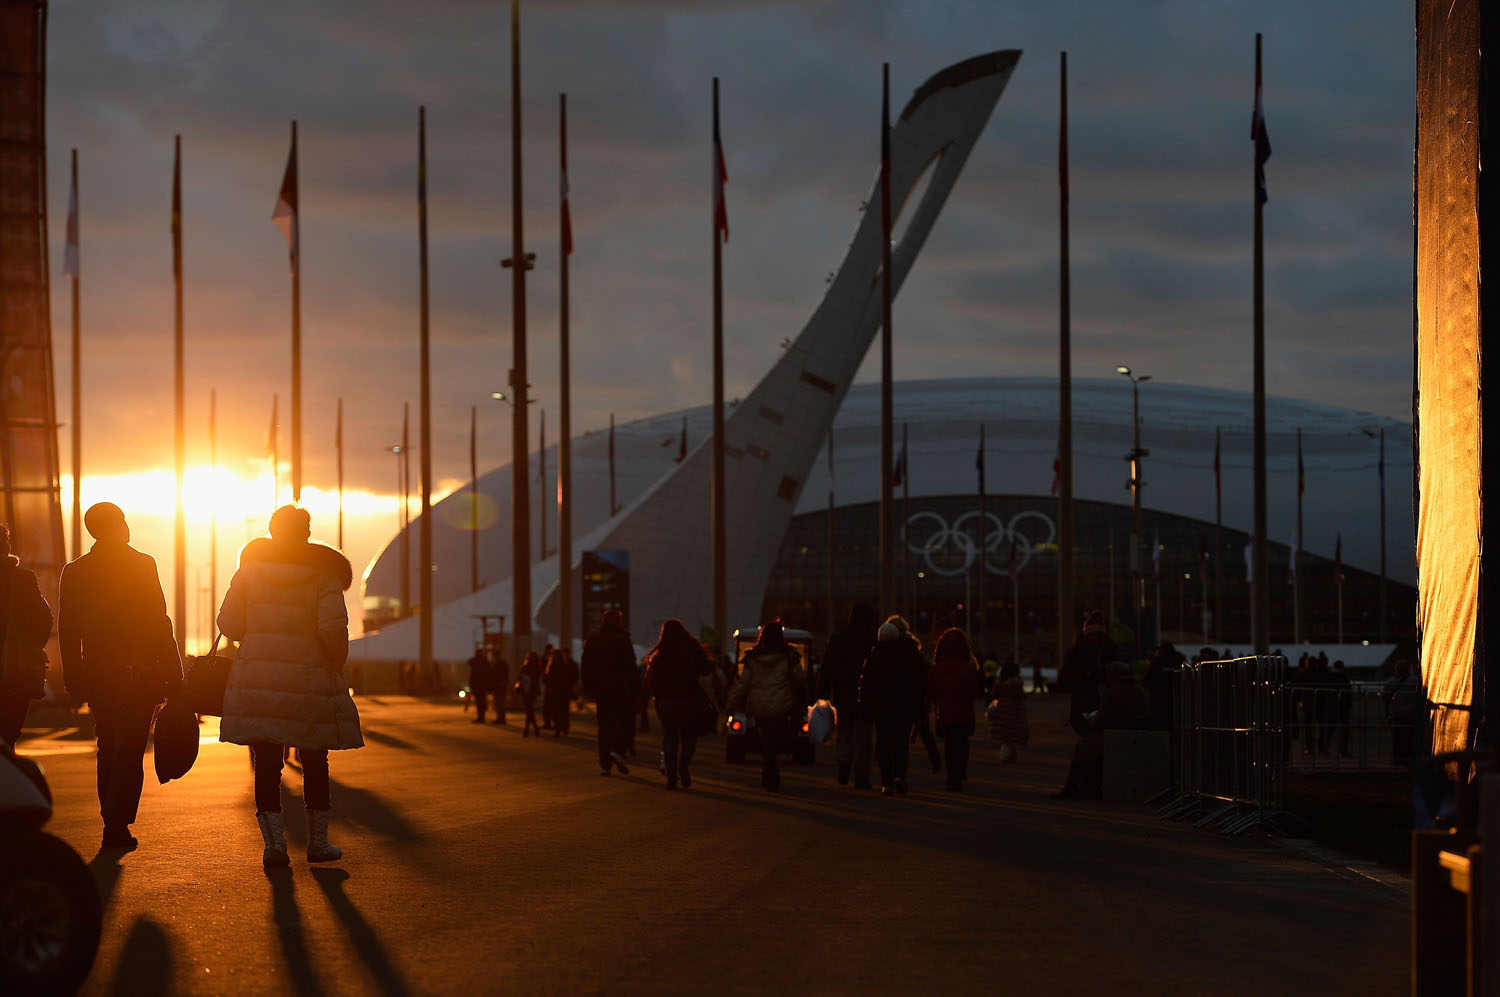 Visitors walk inside the Olympic Park prior to the Sochi 2014 Winter Olympics on February 6, 2014.